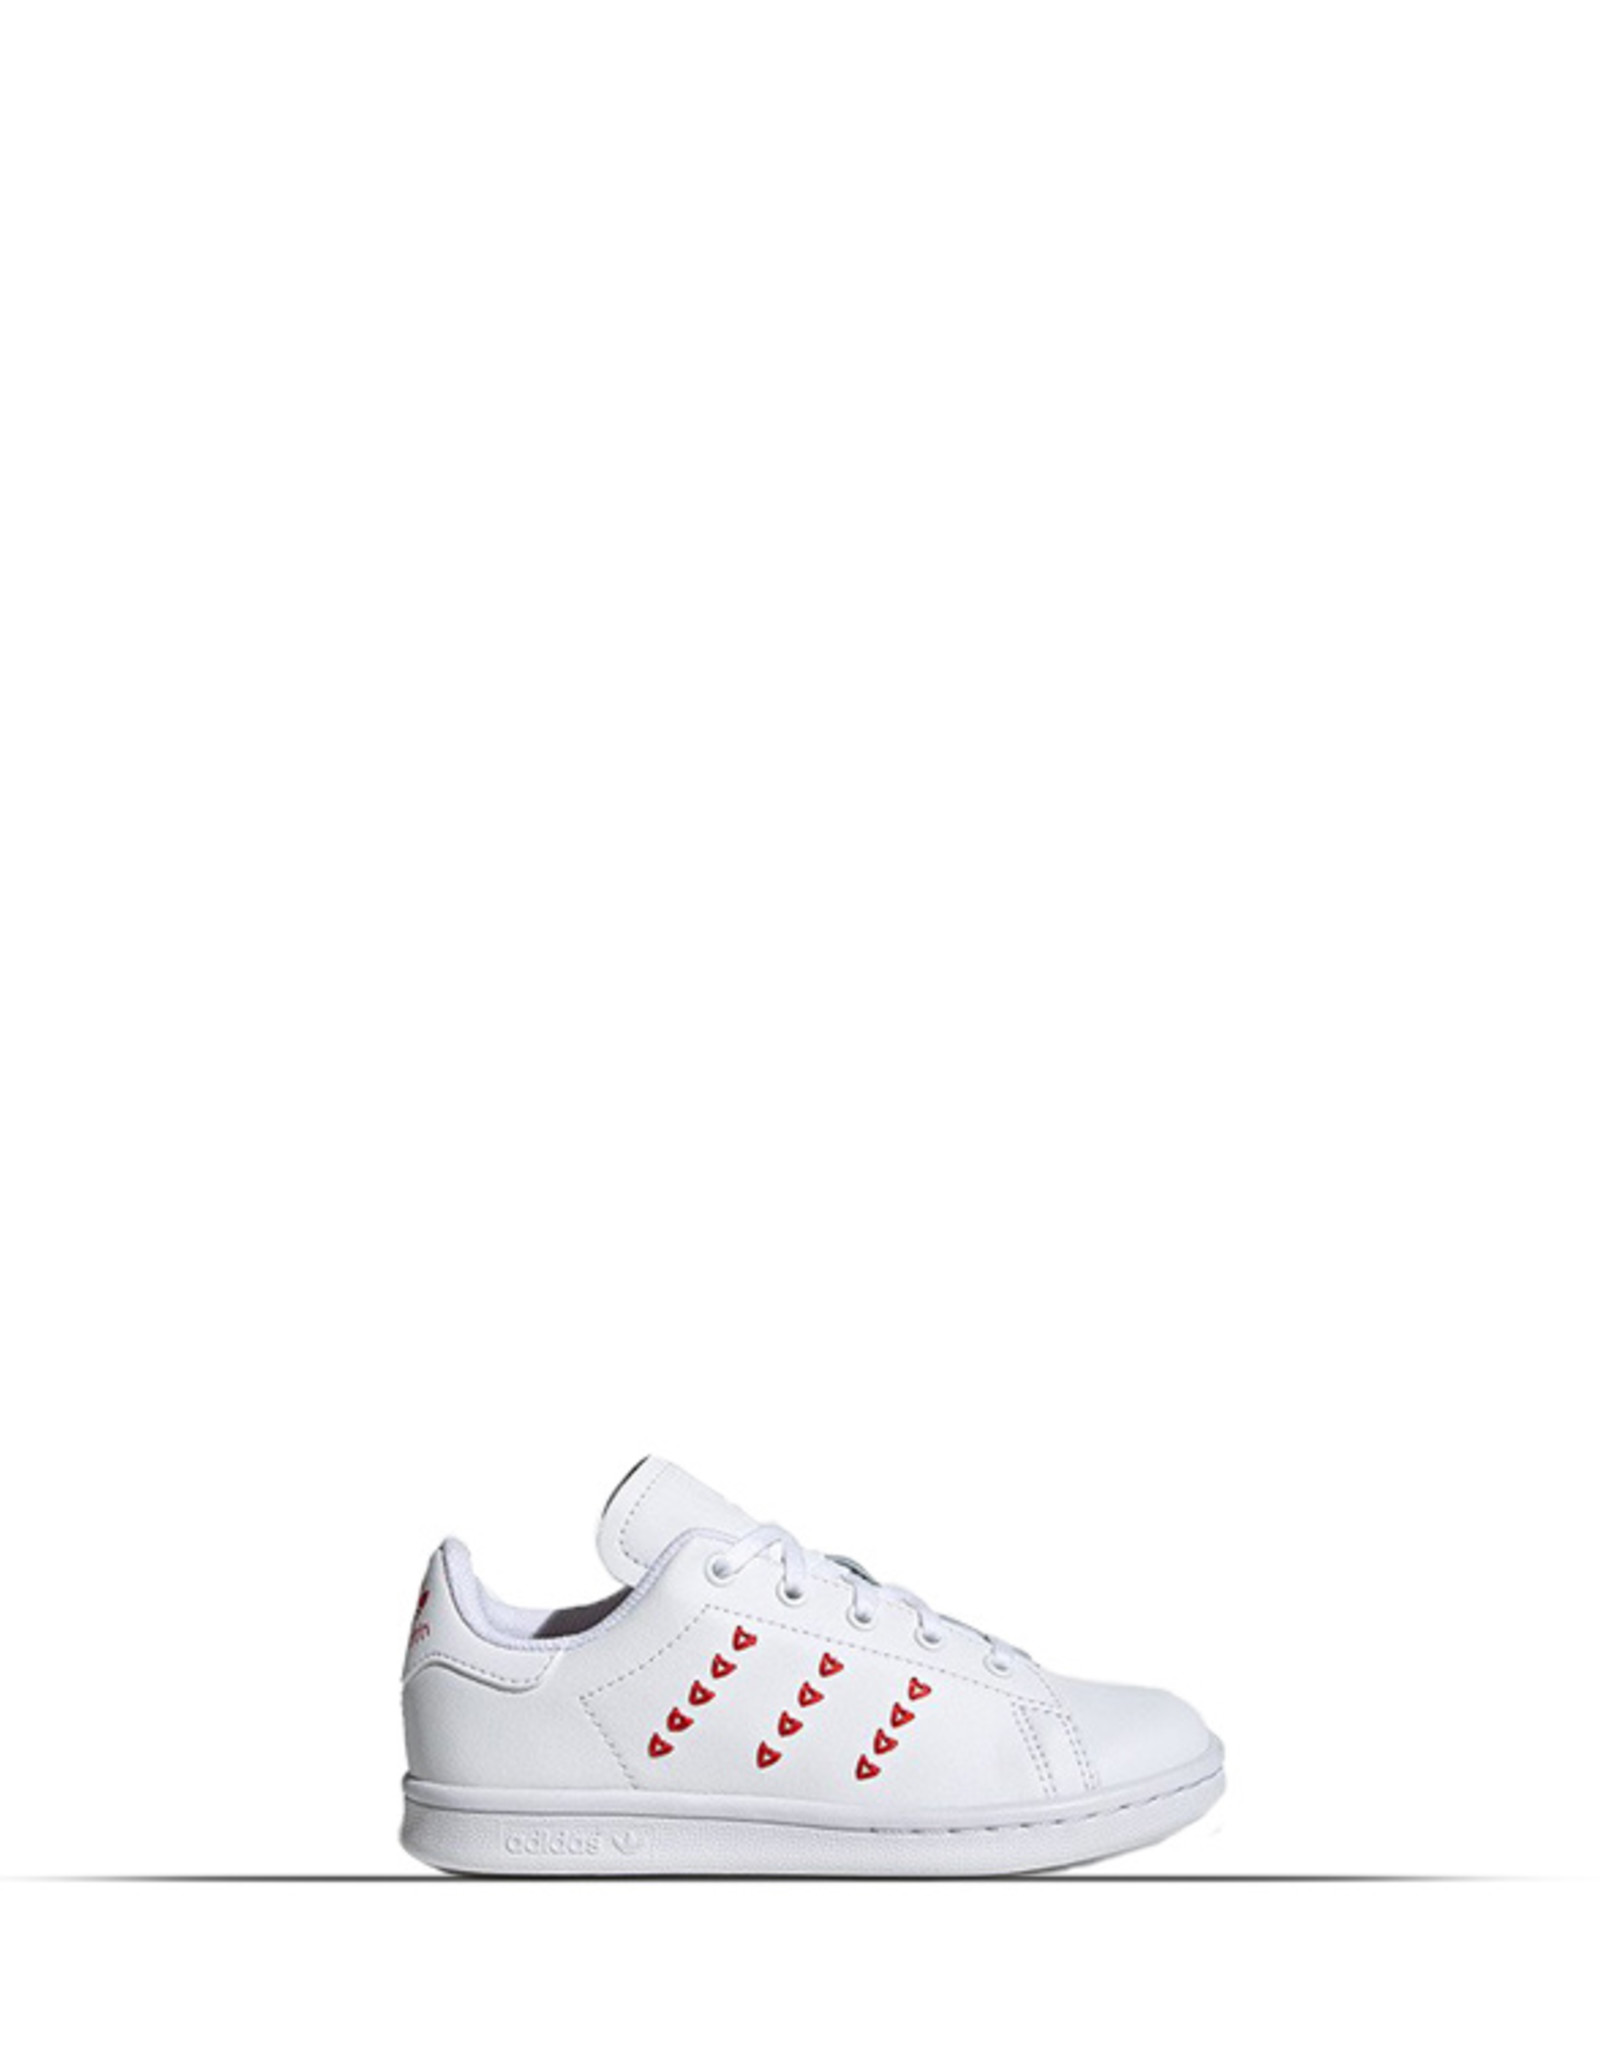 ADIDAS STAN SMITH WHITE CLOUD LUSH RED KIDS YOUTH